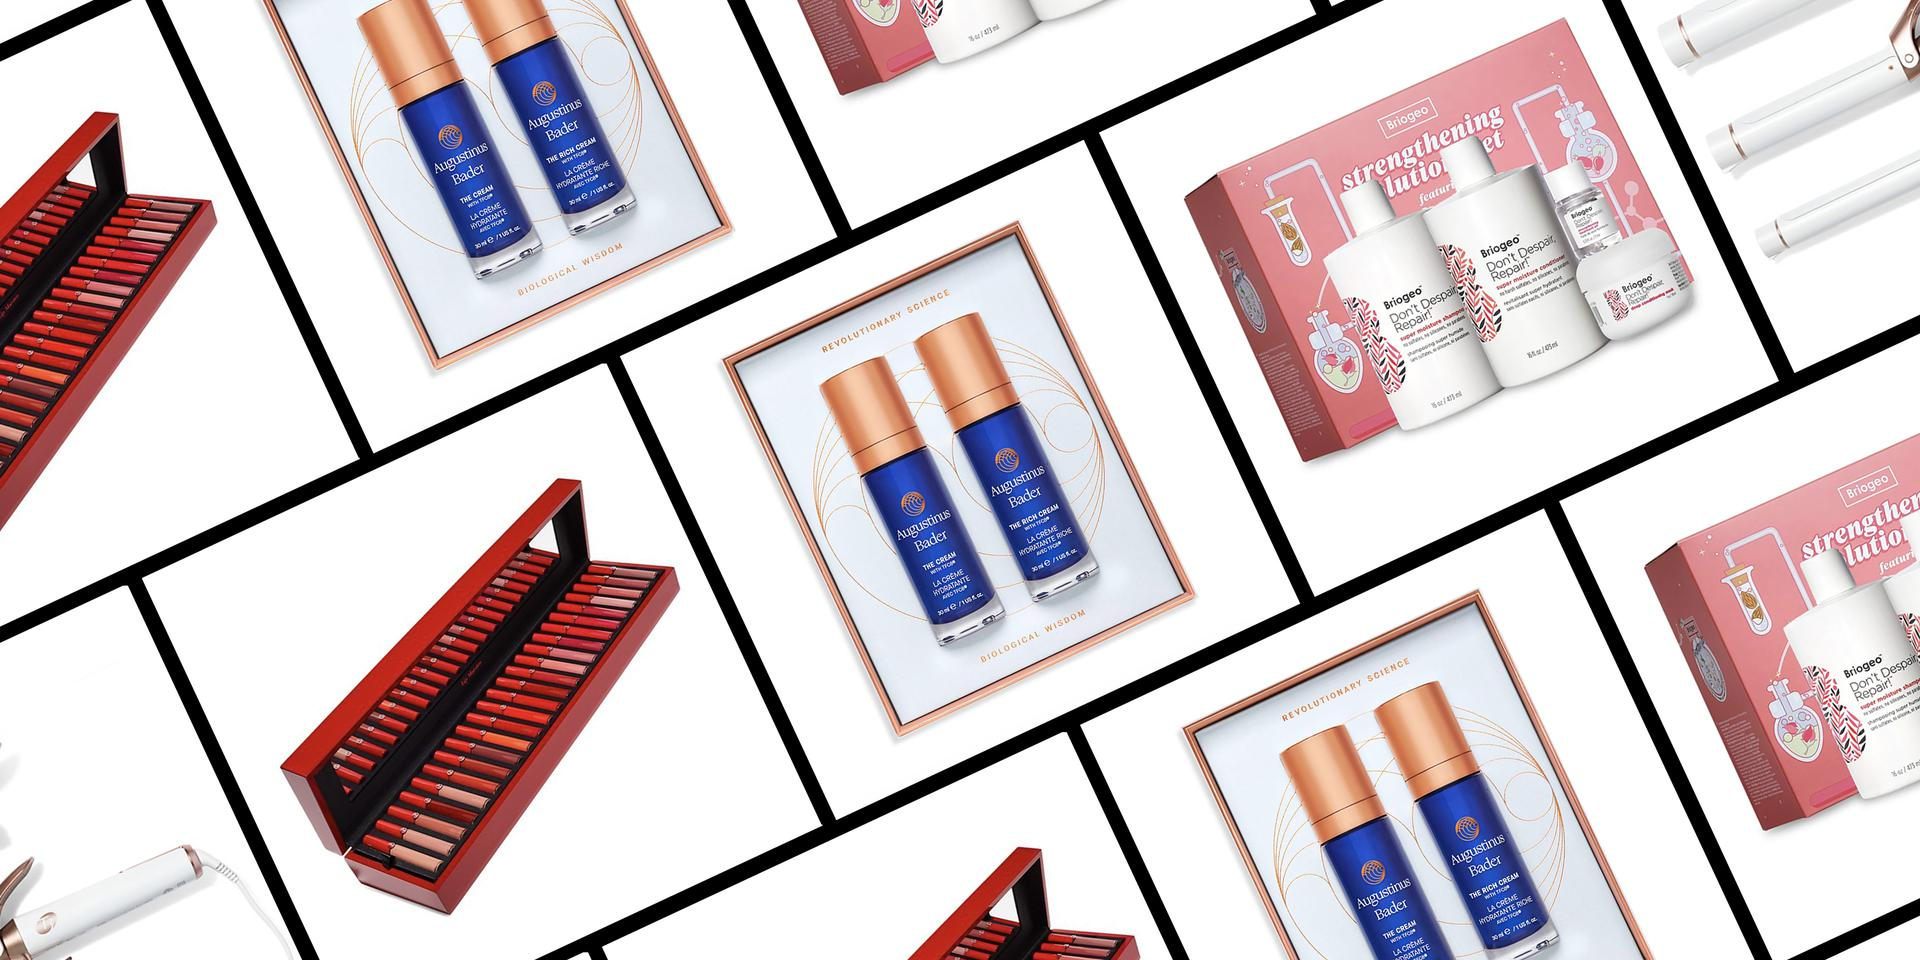 17 Beauty Gift Sets to Shop at the Major Saks Sale